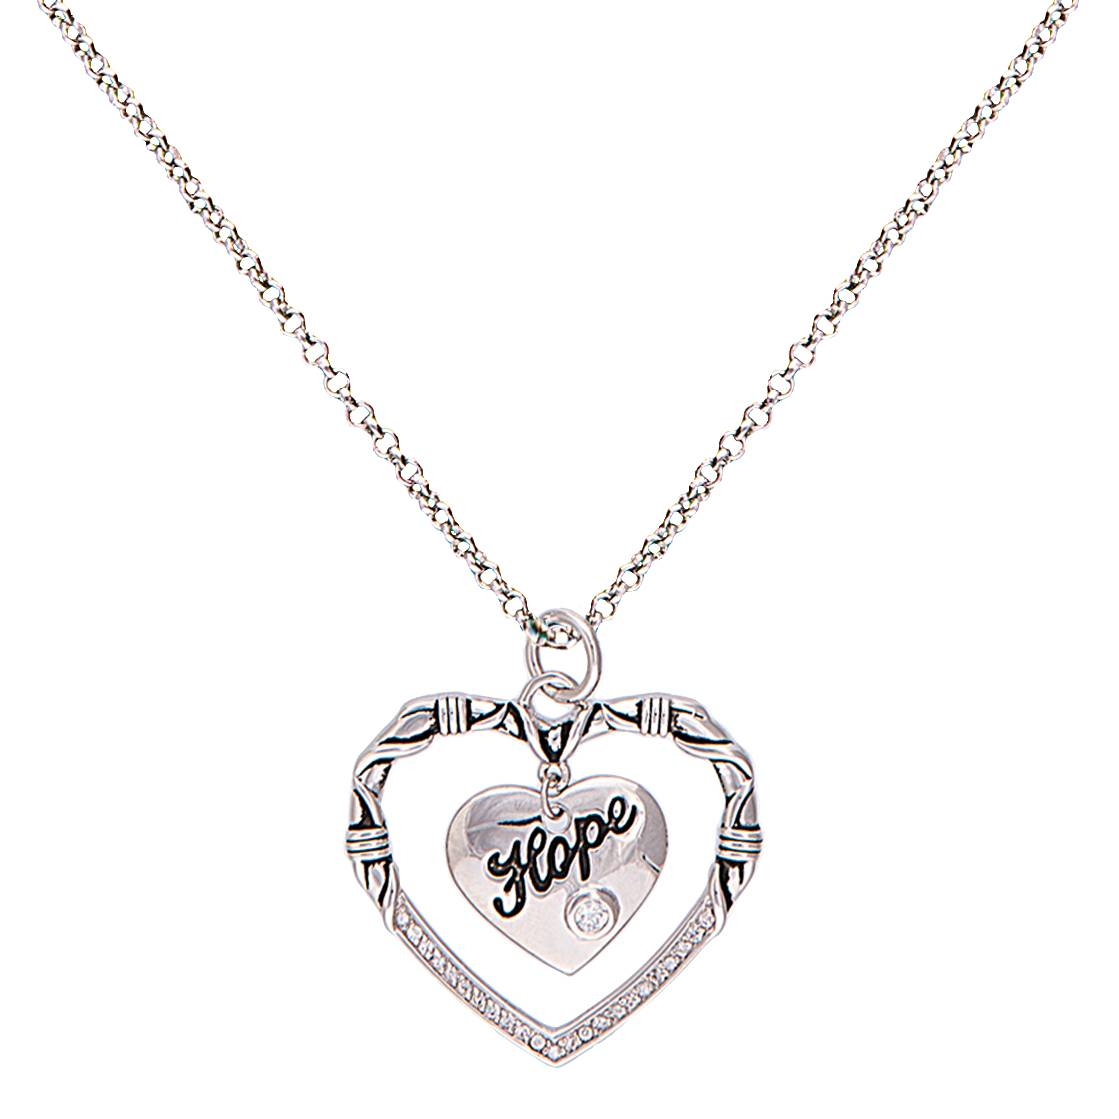 Montana Silversmiths A Cowgirl's Heart Of Hope Necklace